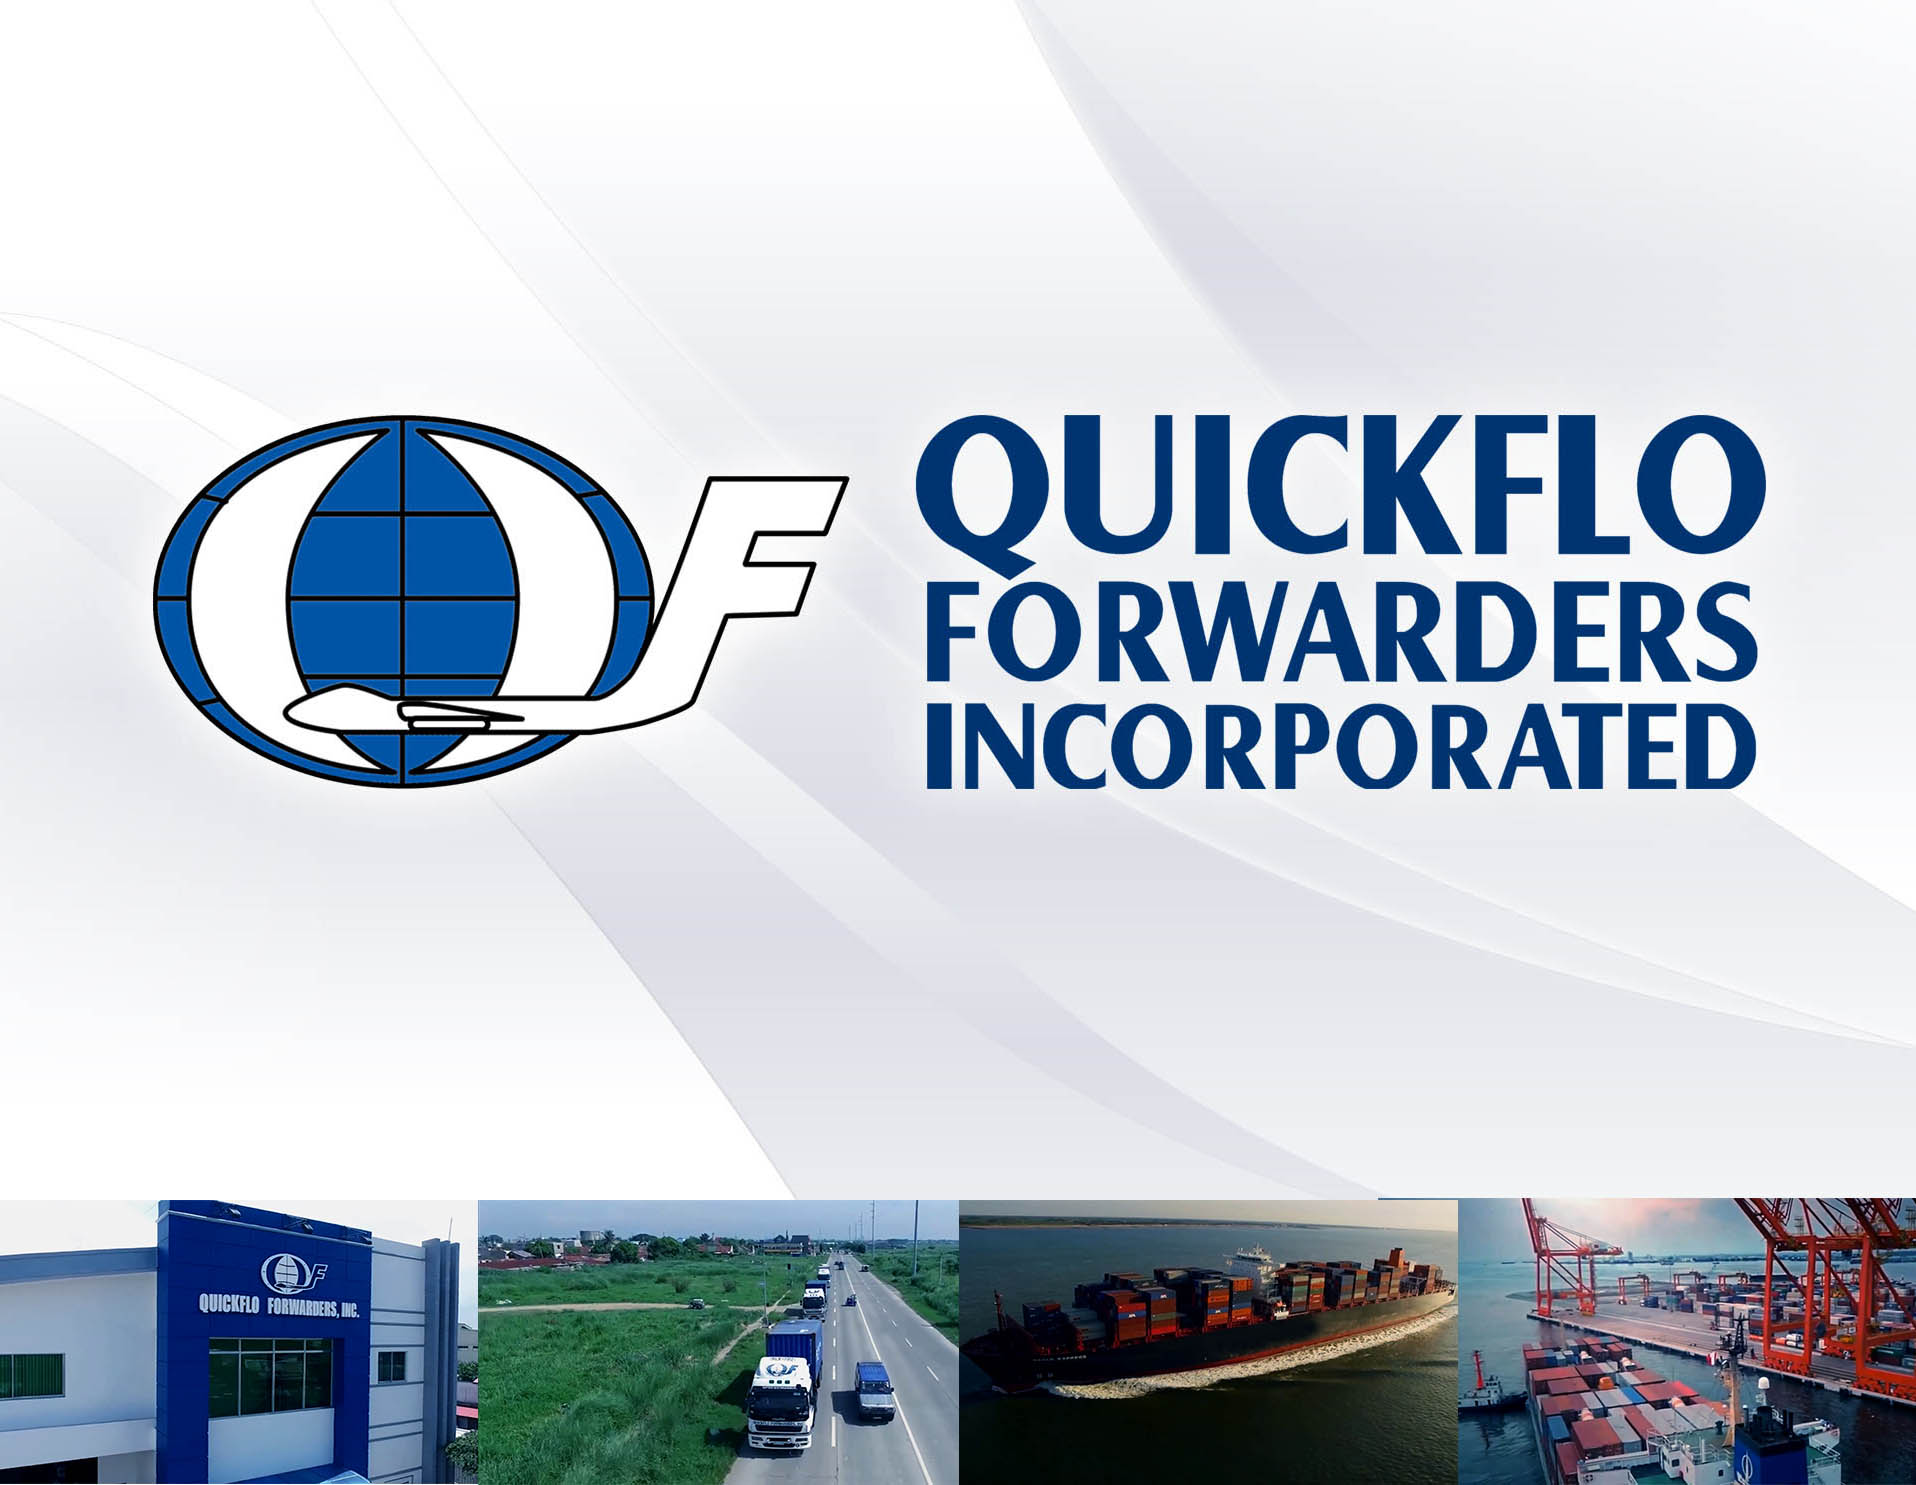 Quickflo Forwarders, Inc. Philippines